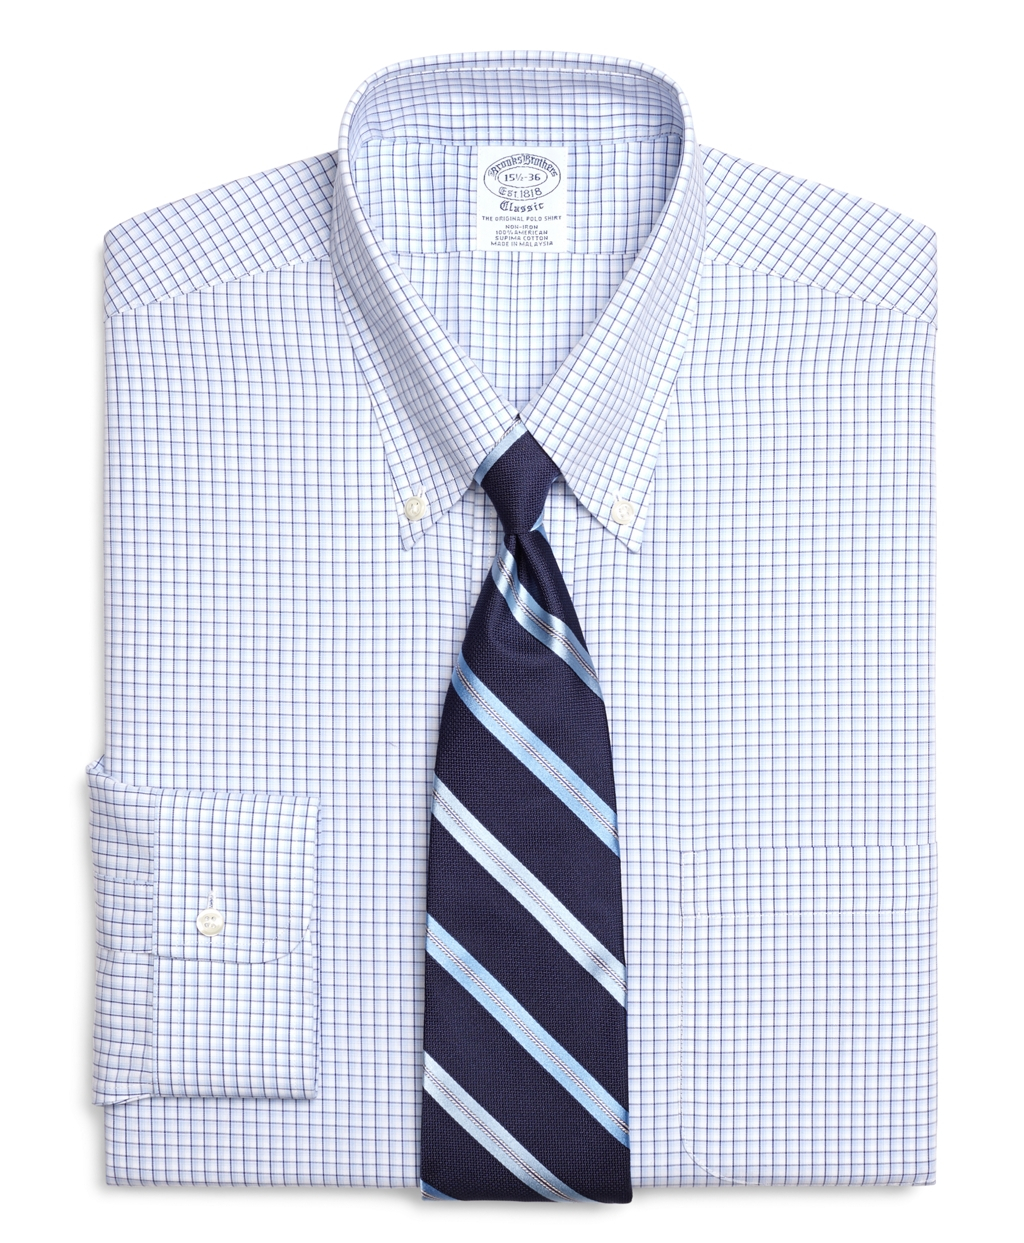 Brooks brothers non iron regent fit sidewheeler tattersall for Brooks brothers non iron shirts review